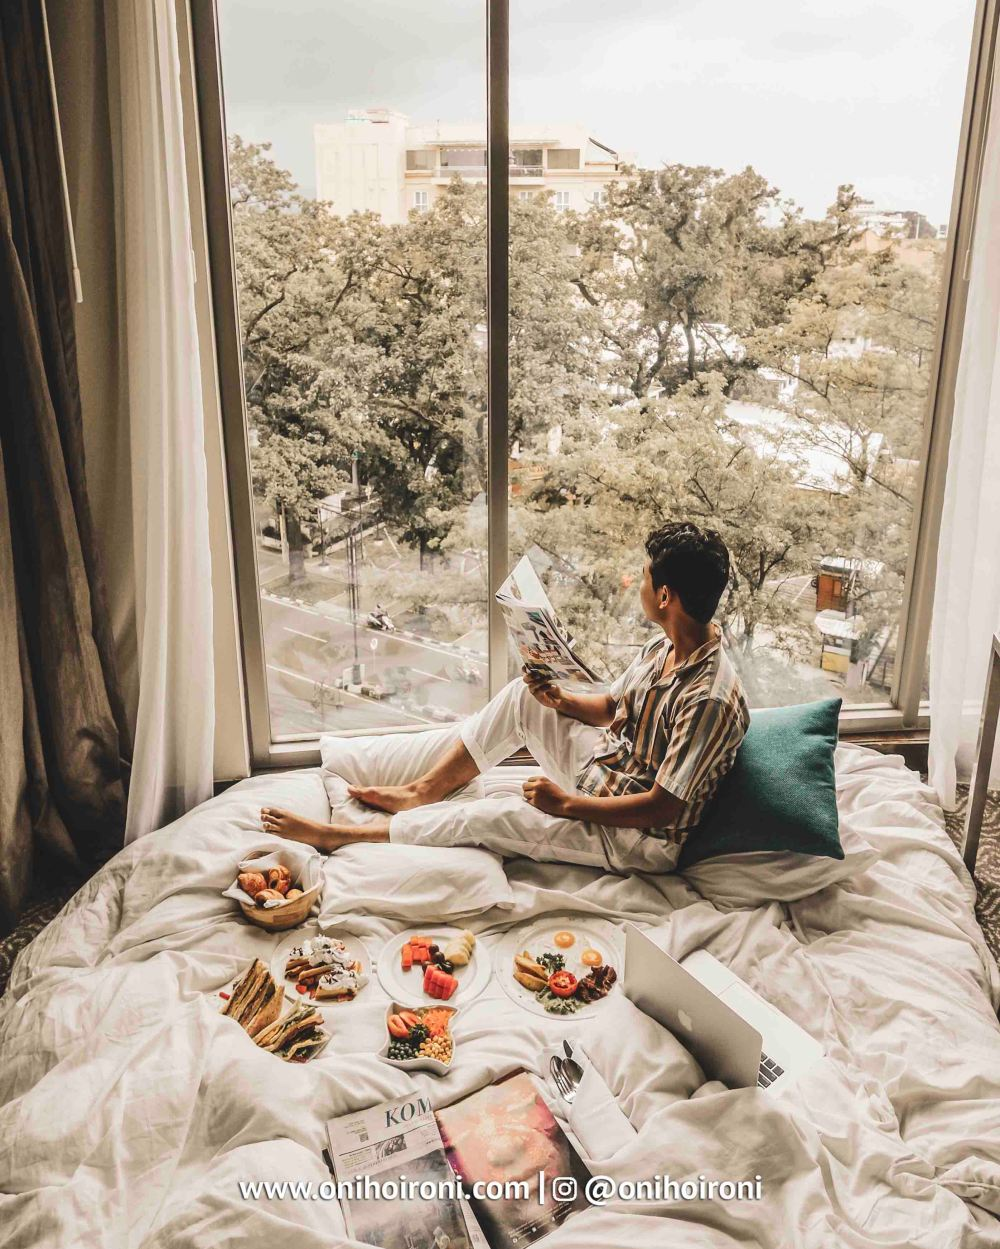 1 Breakfast in bed courtyard bandung oni hoironi